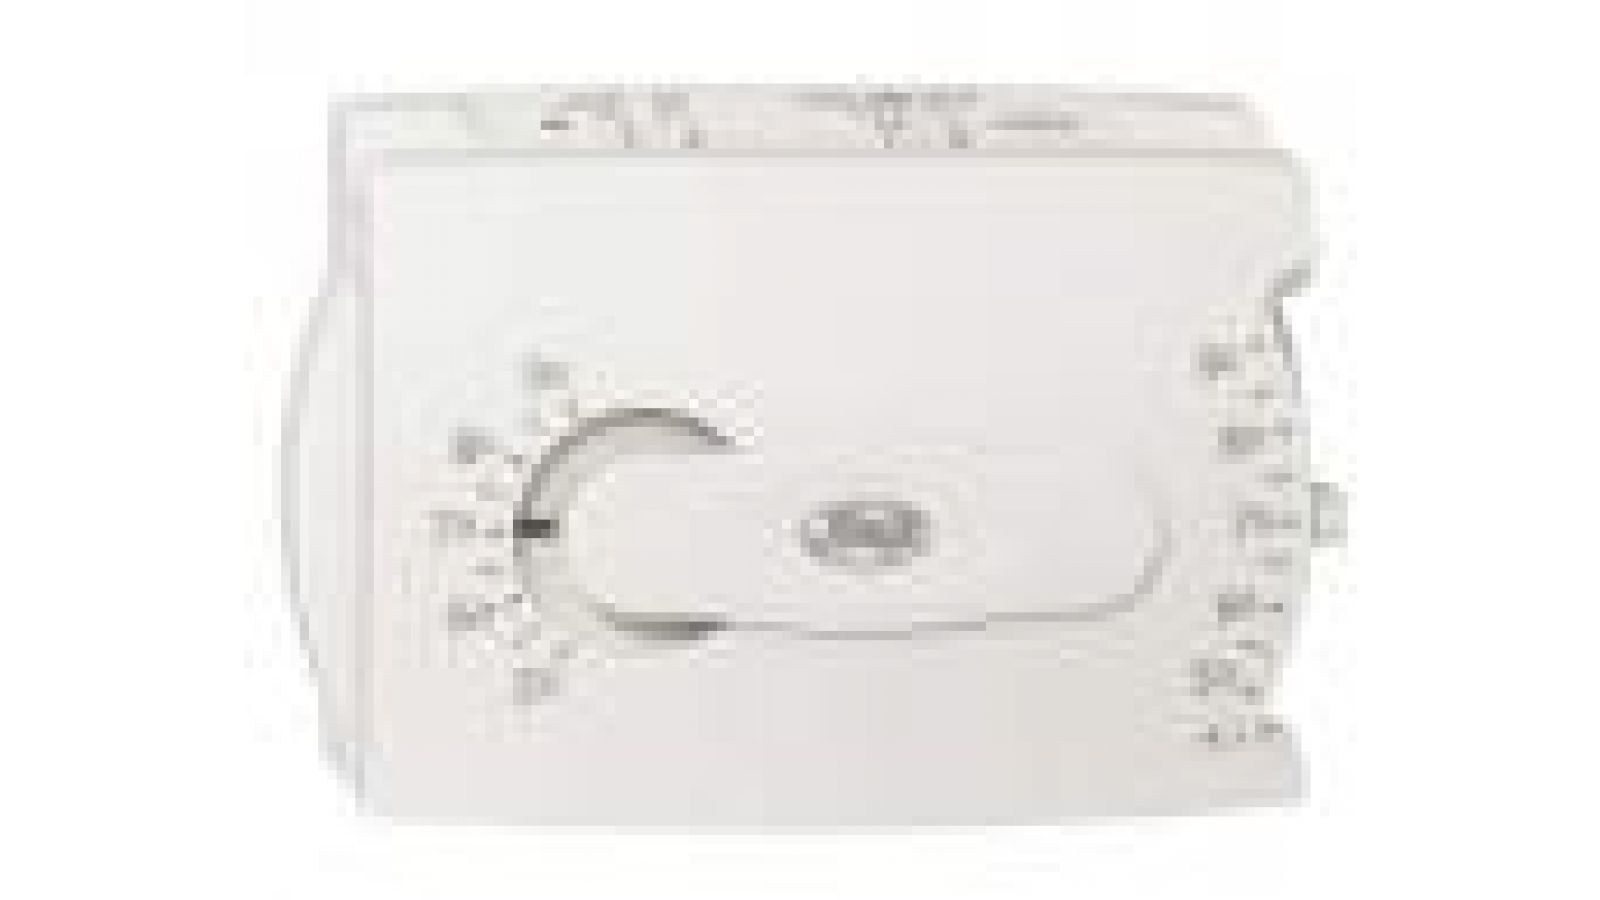 Mechanical Thermostat - Heating & Cooling